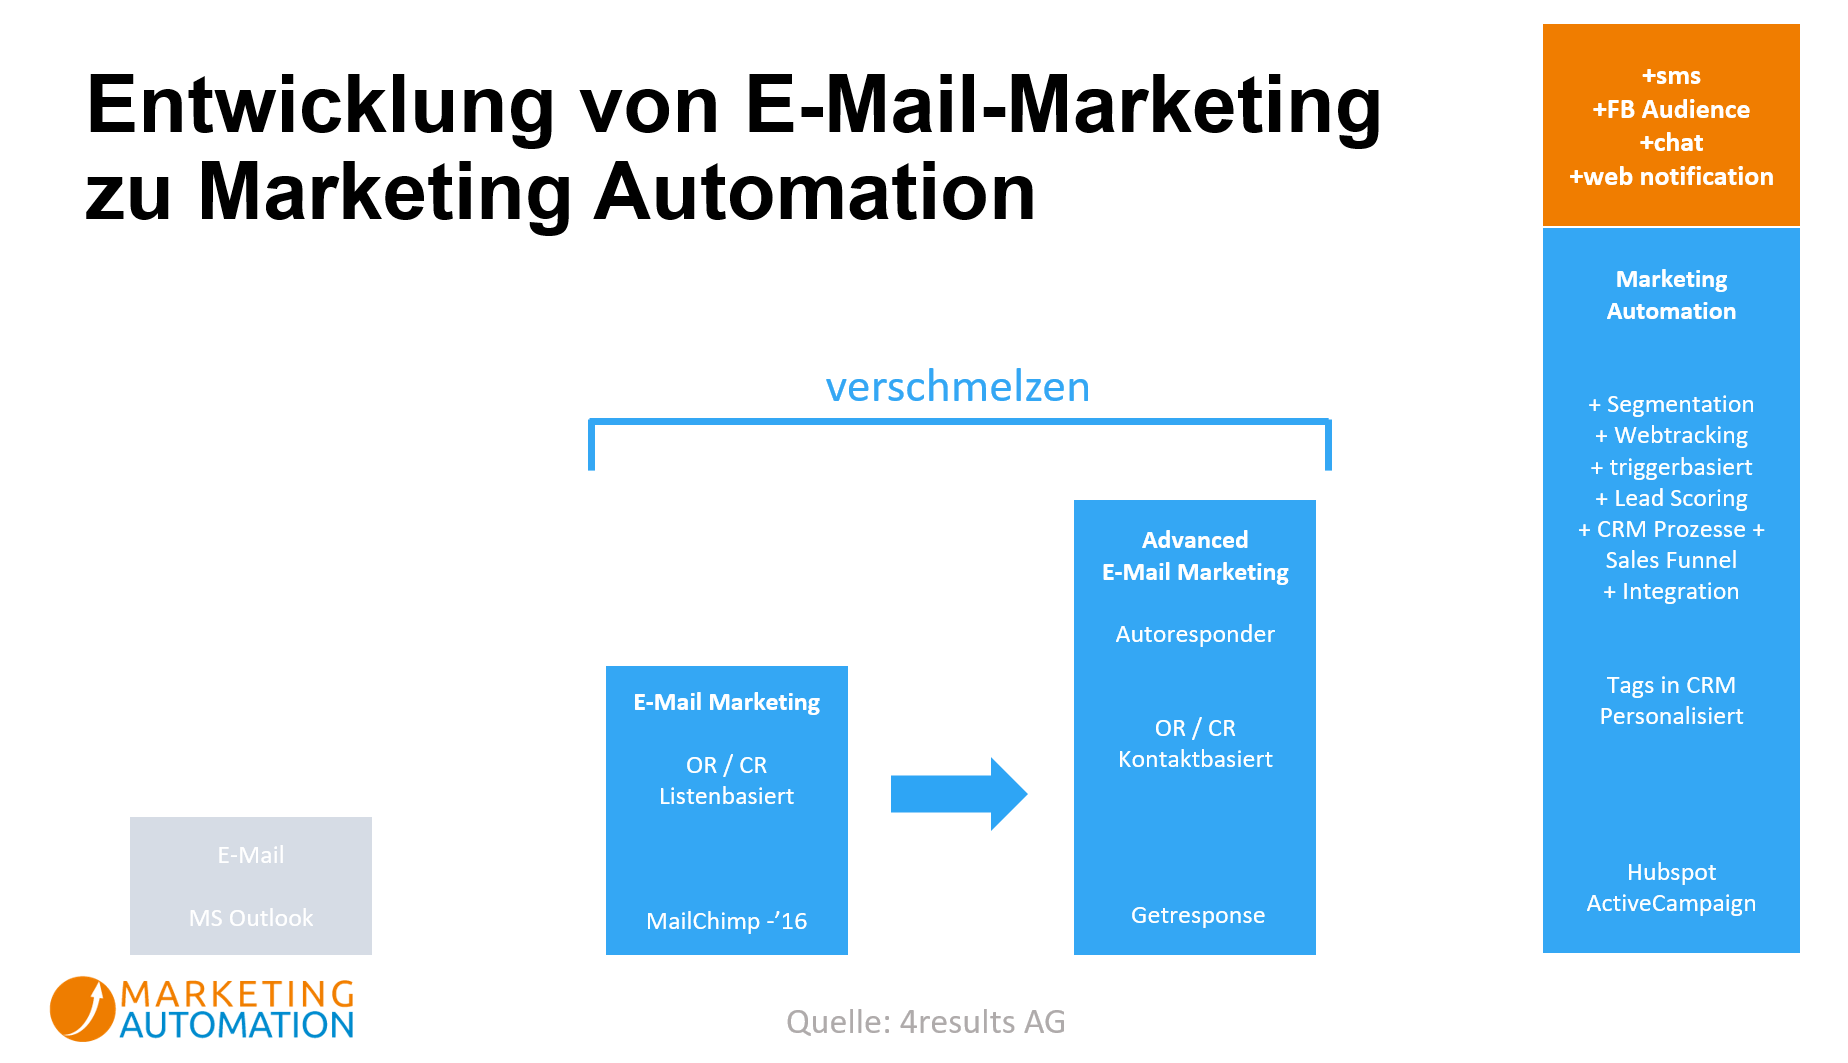 Entwicklung von E-Mail Marketing zu Marketing Automation